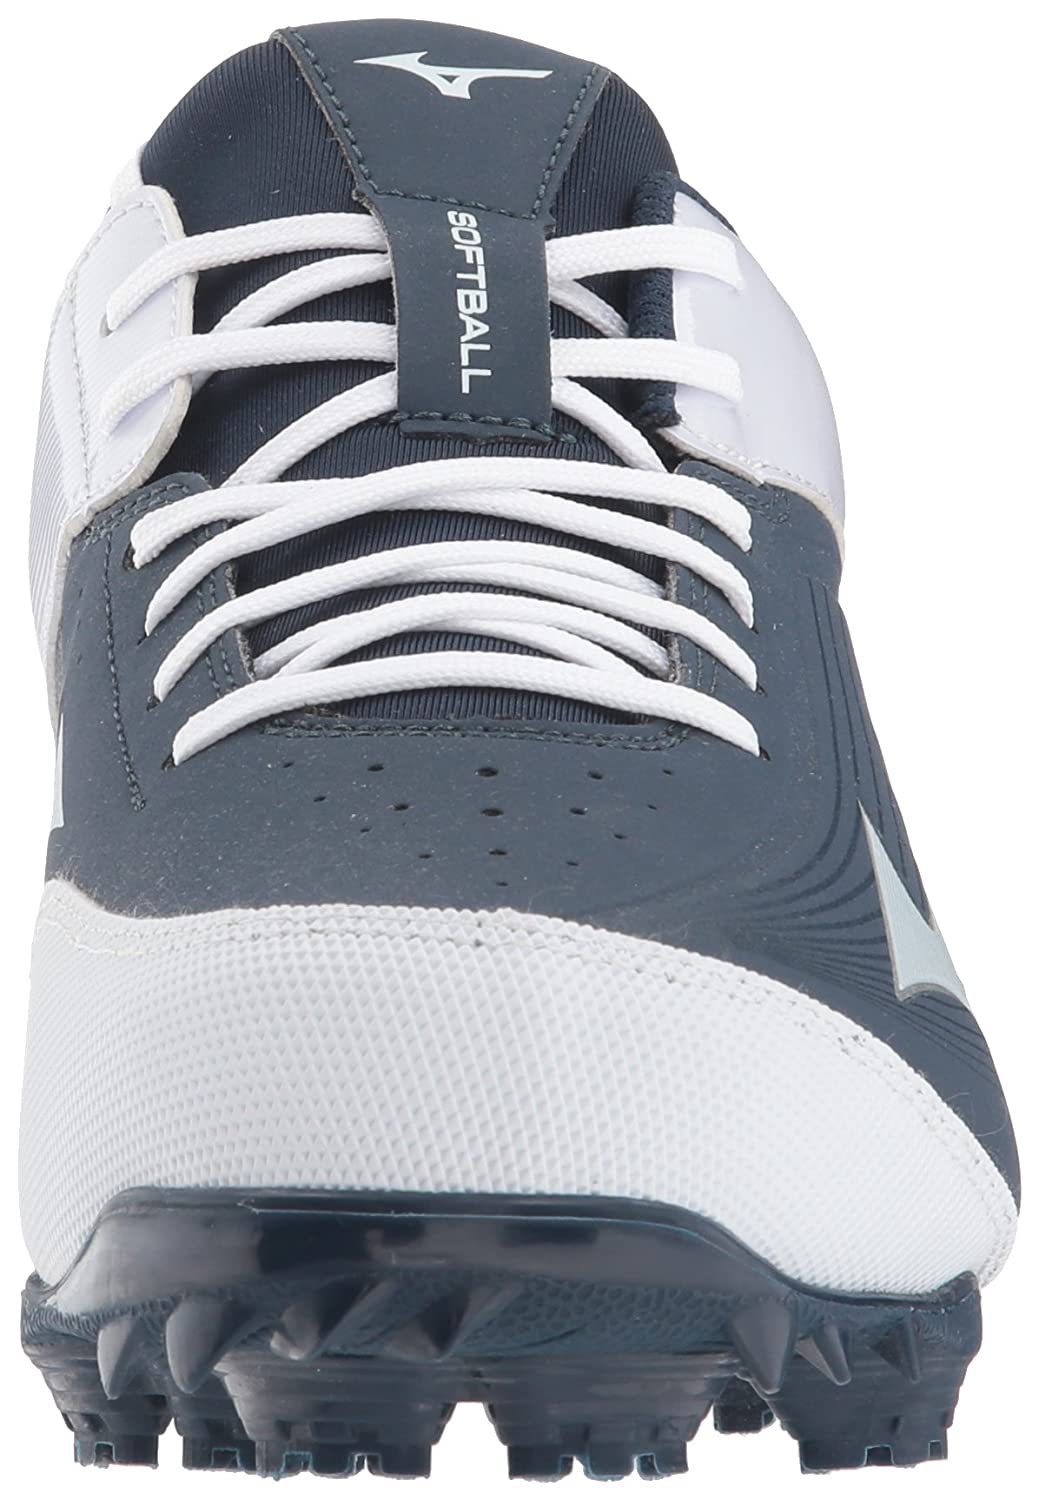 Mizuno (MIZD9)) Women's 9-Spike Advanced Finch Elite 3 Fastpitch Cleat Softball Shoe B071ZZDN33 6.5 B(M) US|Navy/White